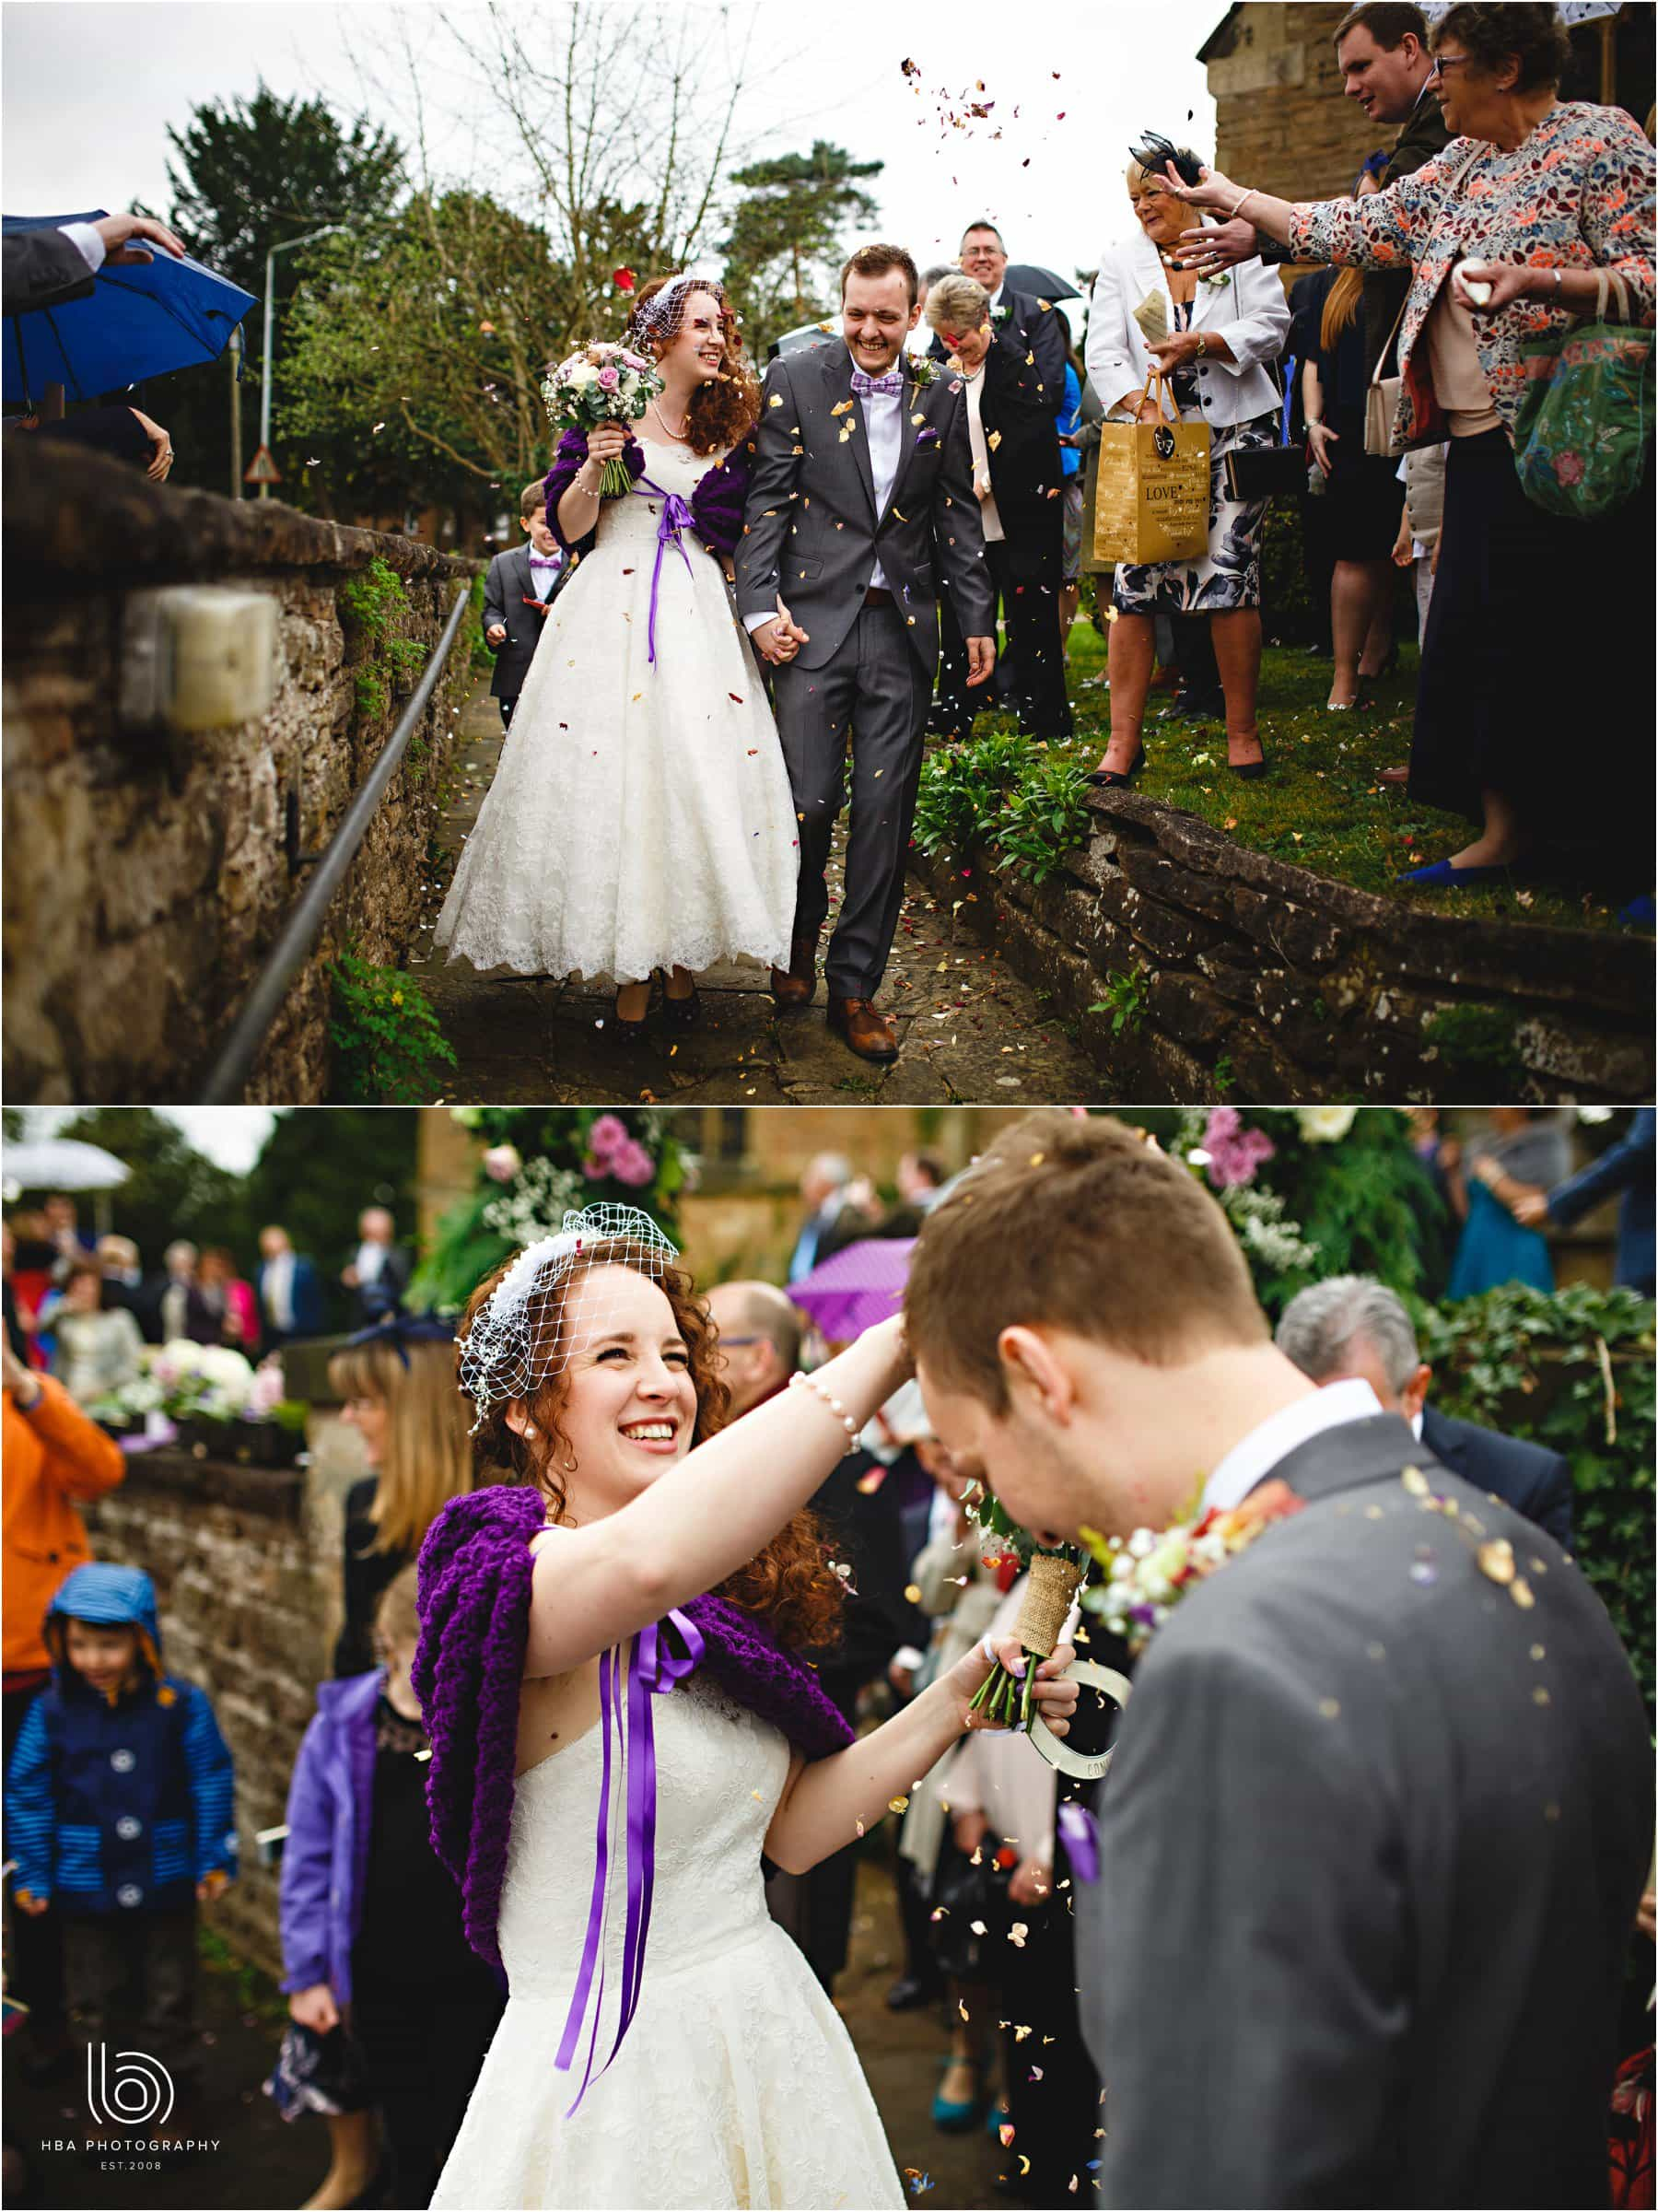 the bride and groom getting covered in confetti